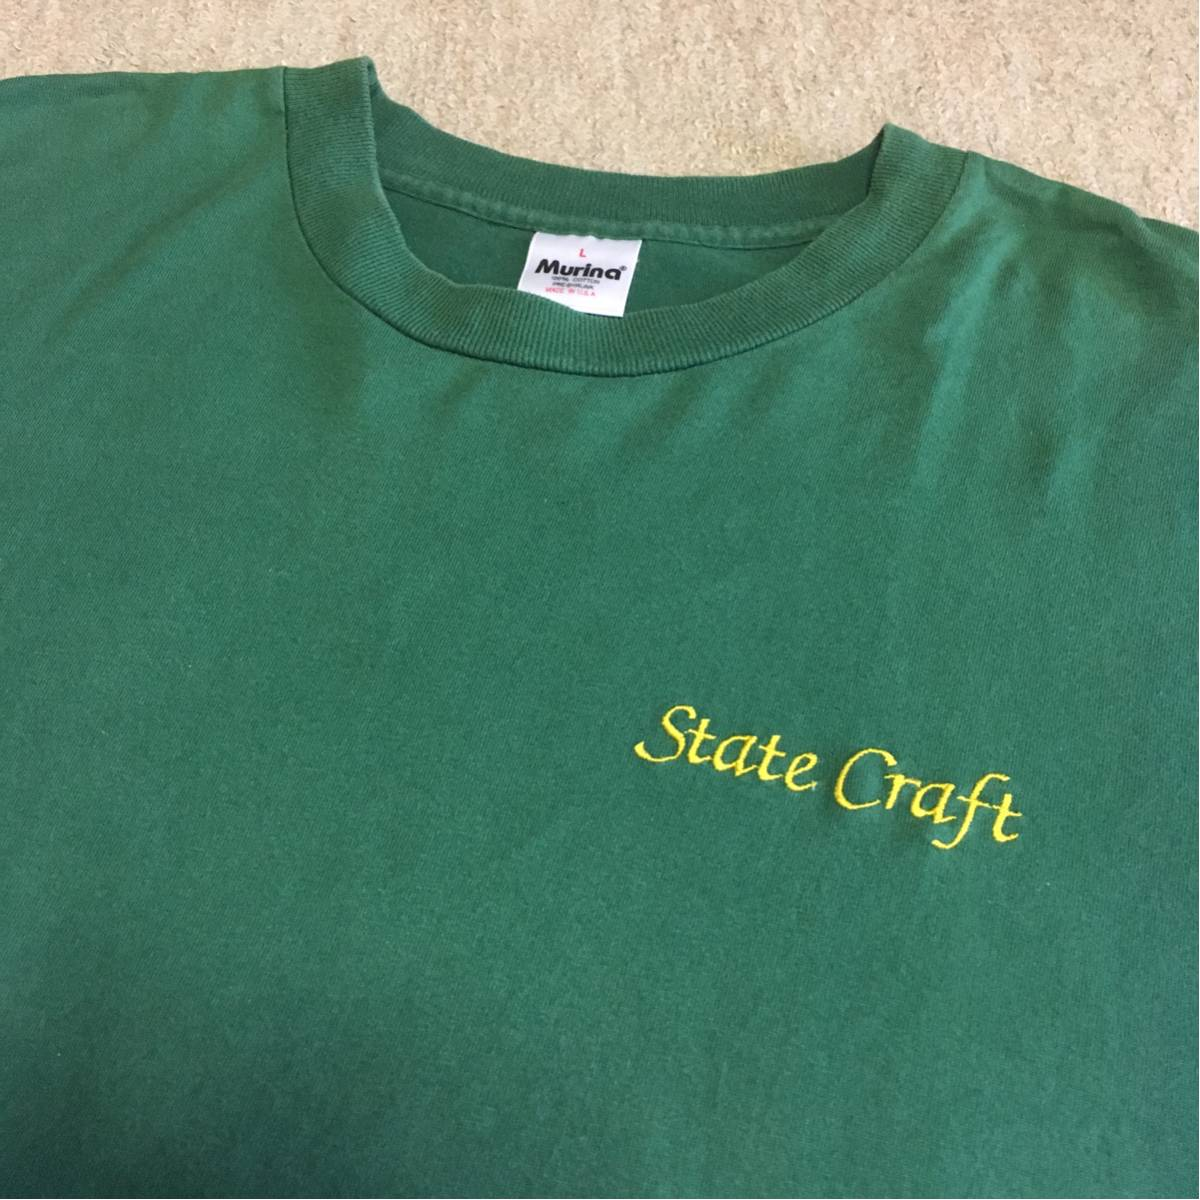 State Craft Tシャツ loyal to the grave numb etrnal B no care switch style bounty hunter gism sick of it all cocobat brahman ライブグッズの画像